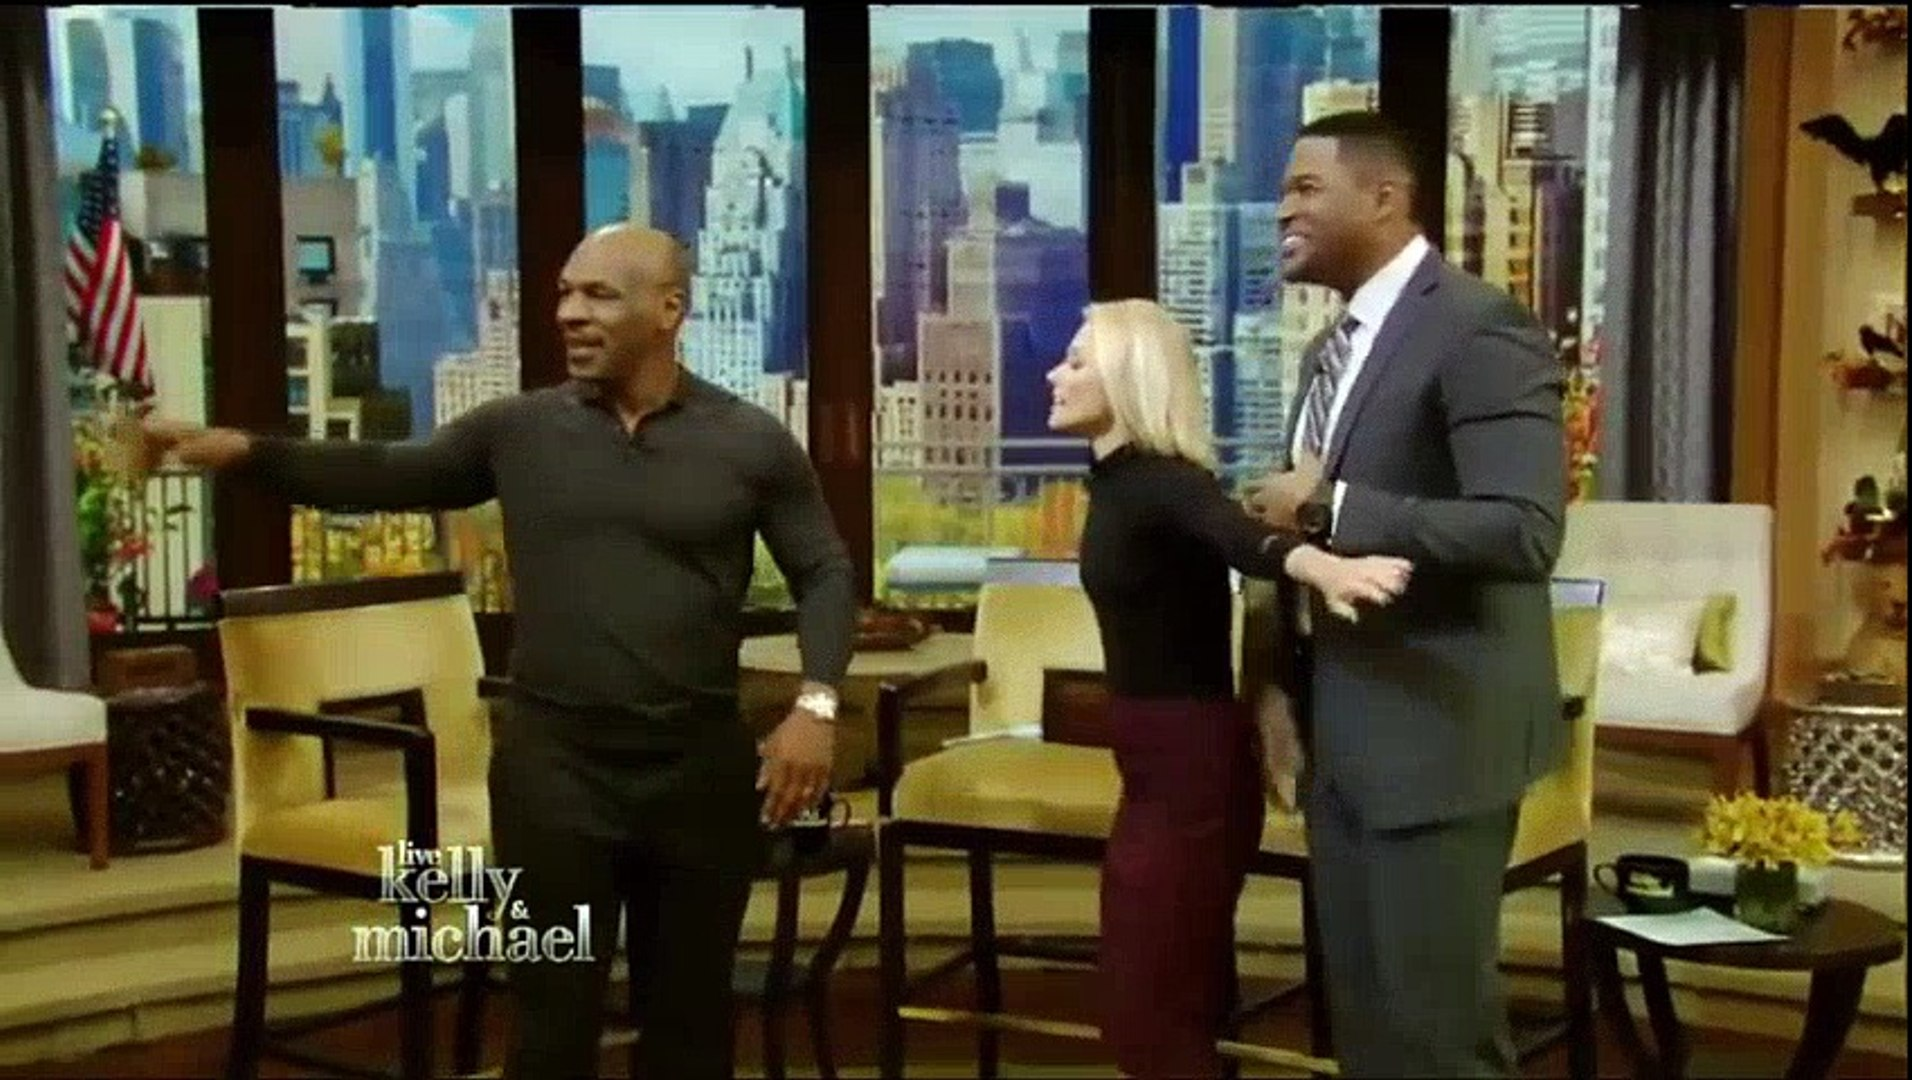 Mike Tyson Interview   Mike Tyson live with Kelly & Michael Jamie Fox to play Mike Tyson life st